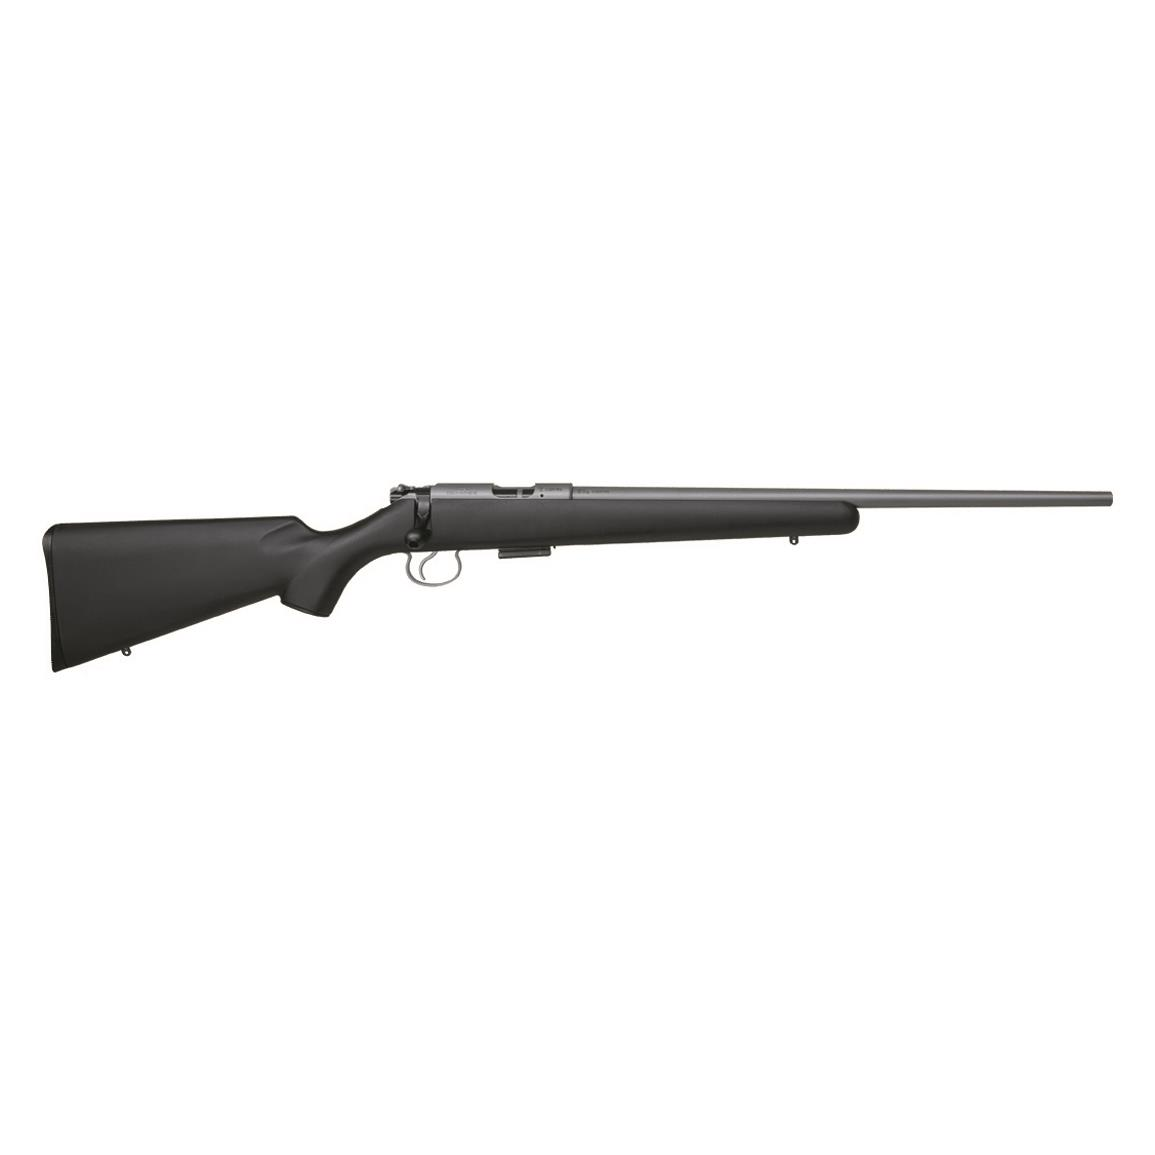 "CZ-USA 455 American, Bolt Action, .22LR, Rimfire, 20.5"" Stainless Barrel, Synthetic Stock,5+1 Rounds"